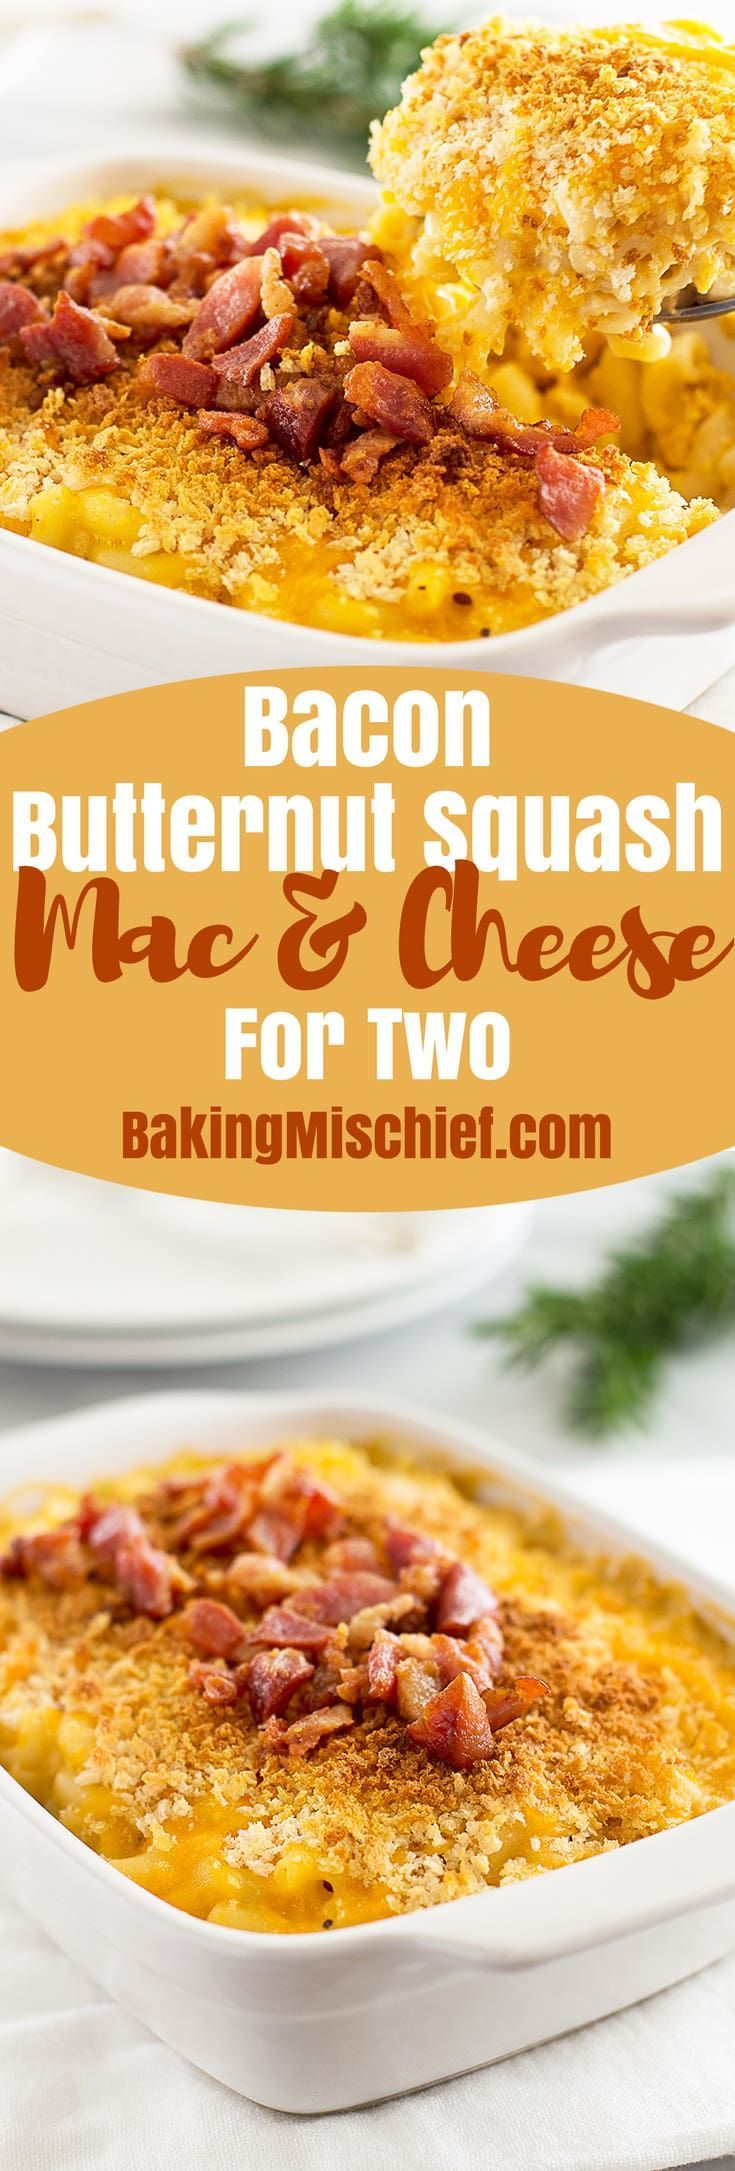 This smokey, creamy Bacon Butternut Squash Mac and Cheese for Two is made with butternut squash roasted in bacon drippings, crunchy panko, and sharp Cheddar cheese. Recipe includes nutritional information. From BakingMischief.com